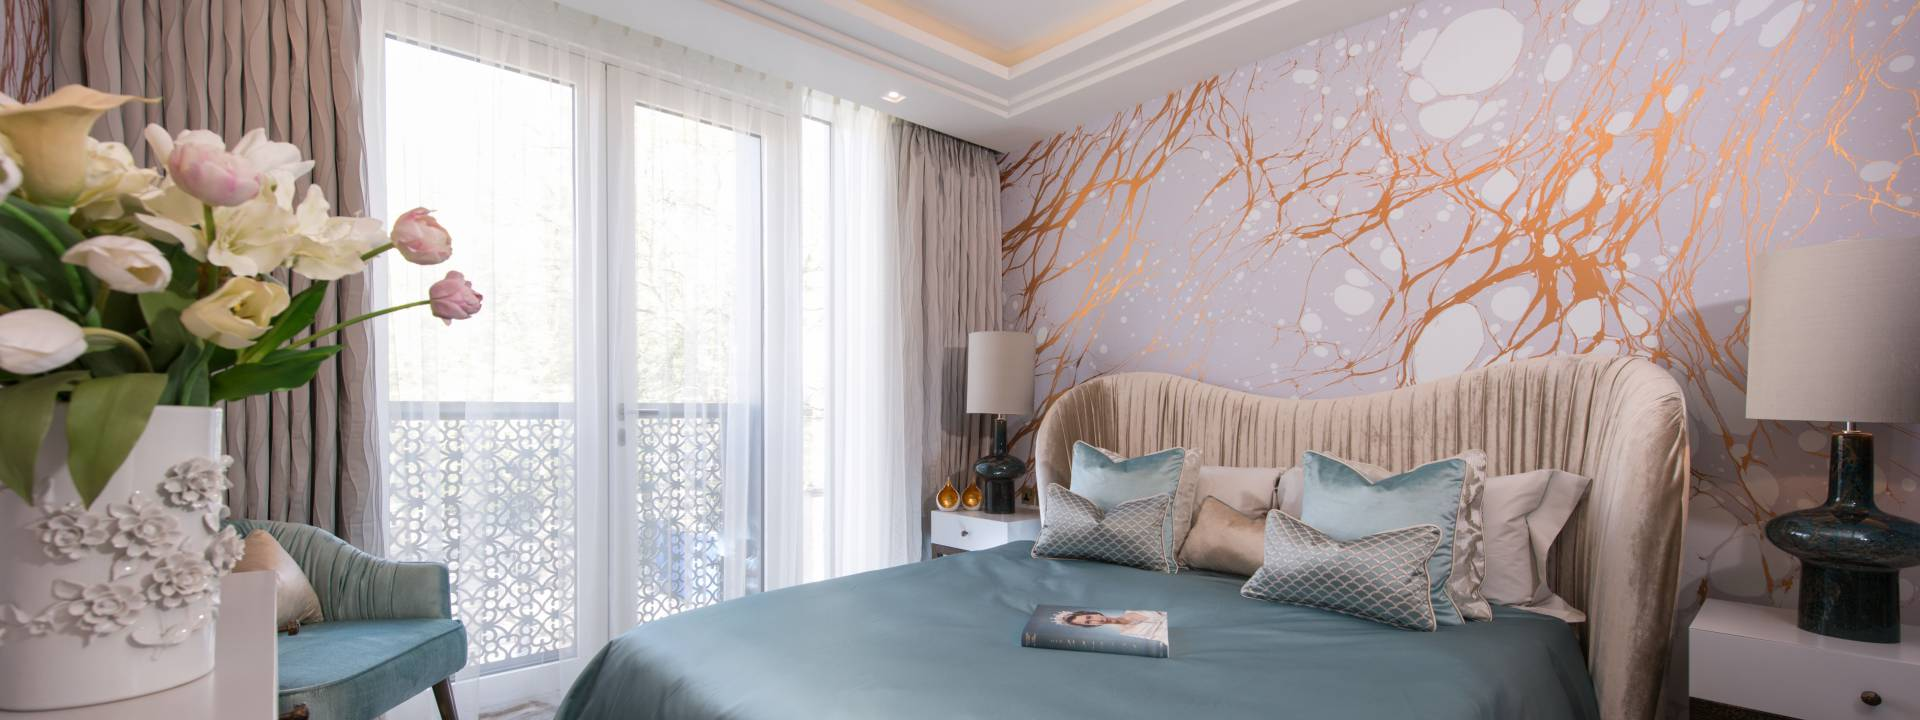 Taylor-interiors-luxury-bedroom-interior-design-headboard - Copy